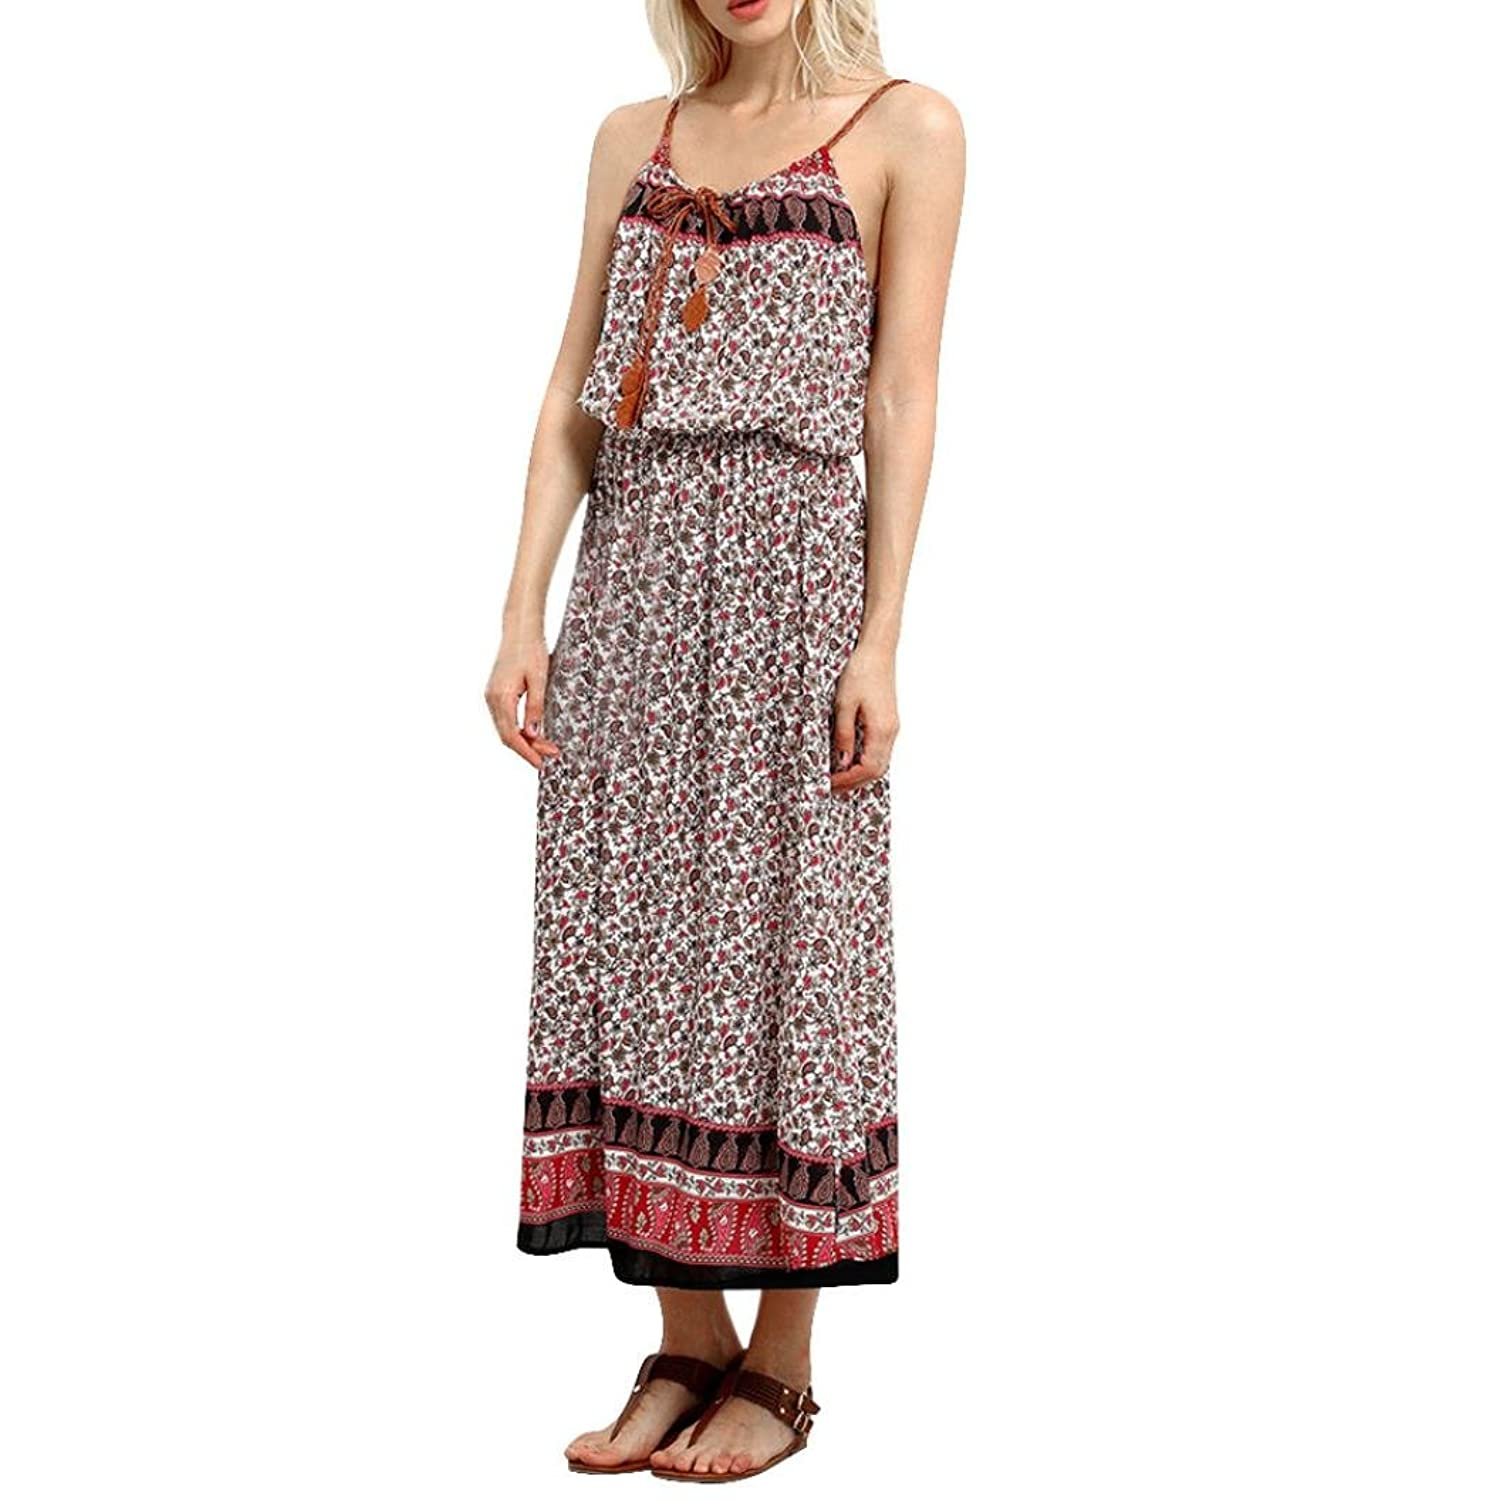 Besde Women Ladies Summer Boho Long Dress Beach Dress Sundress